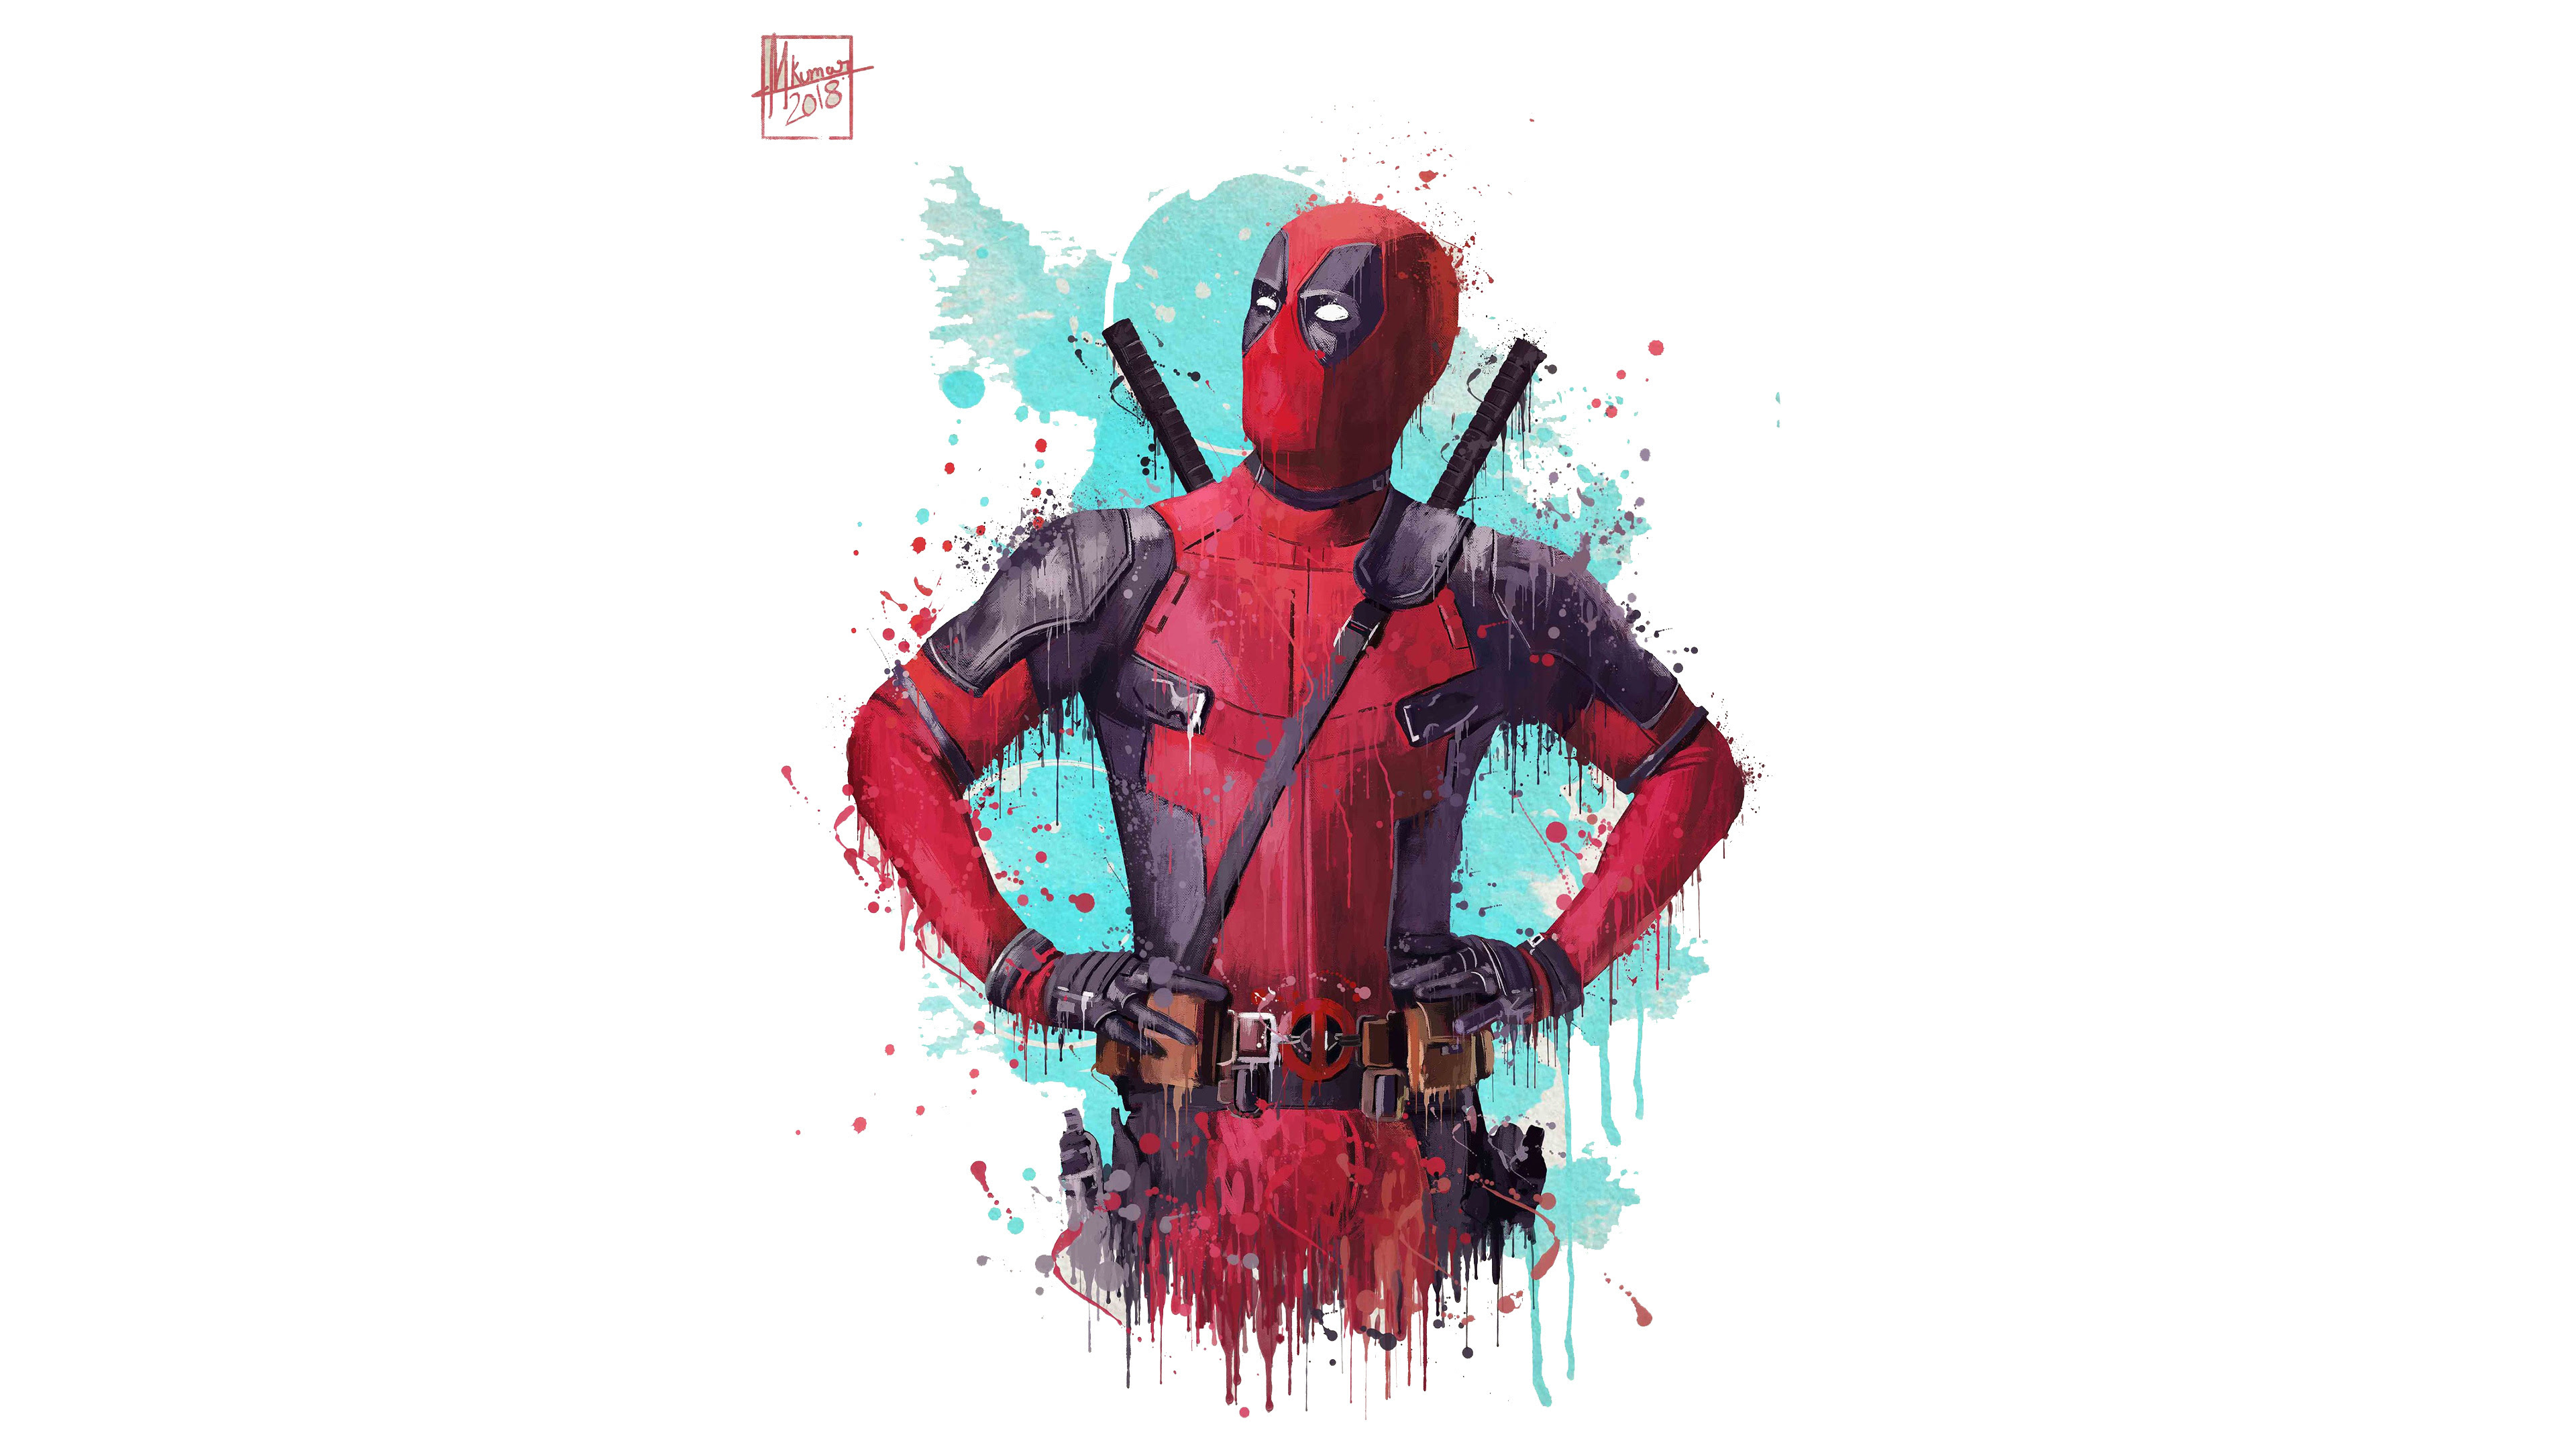 Download 3840x2160 Wallpaper Deadpool 2 2018 Movie Fan Artwork 4k